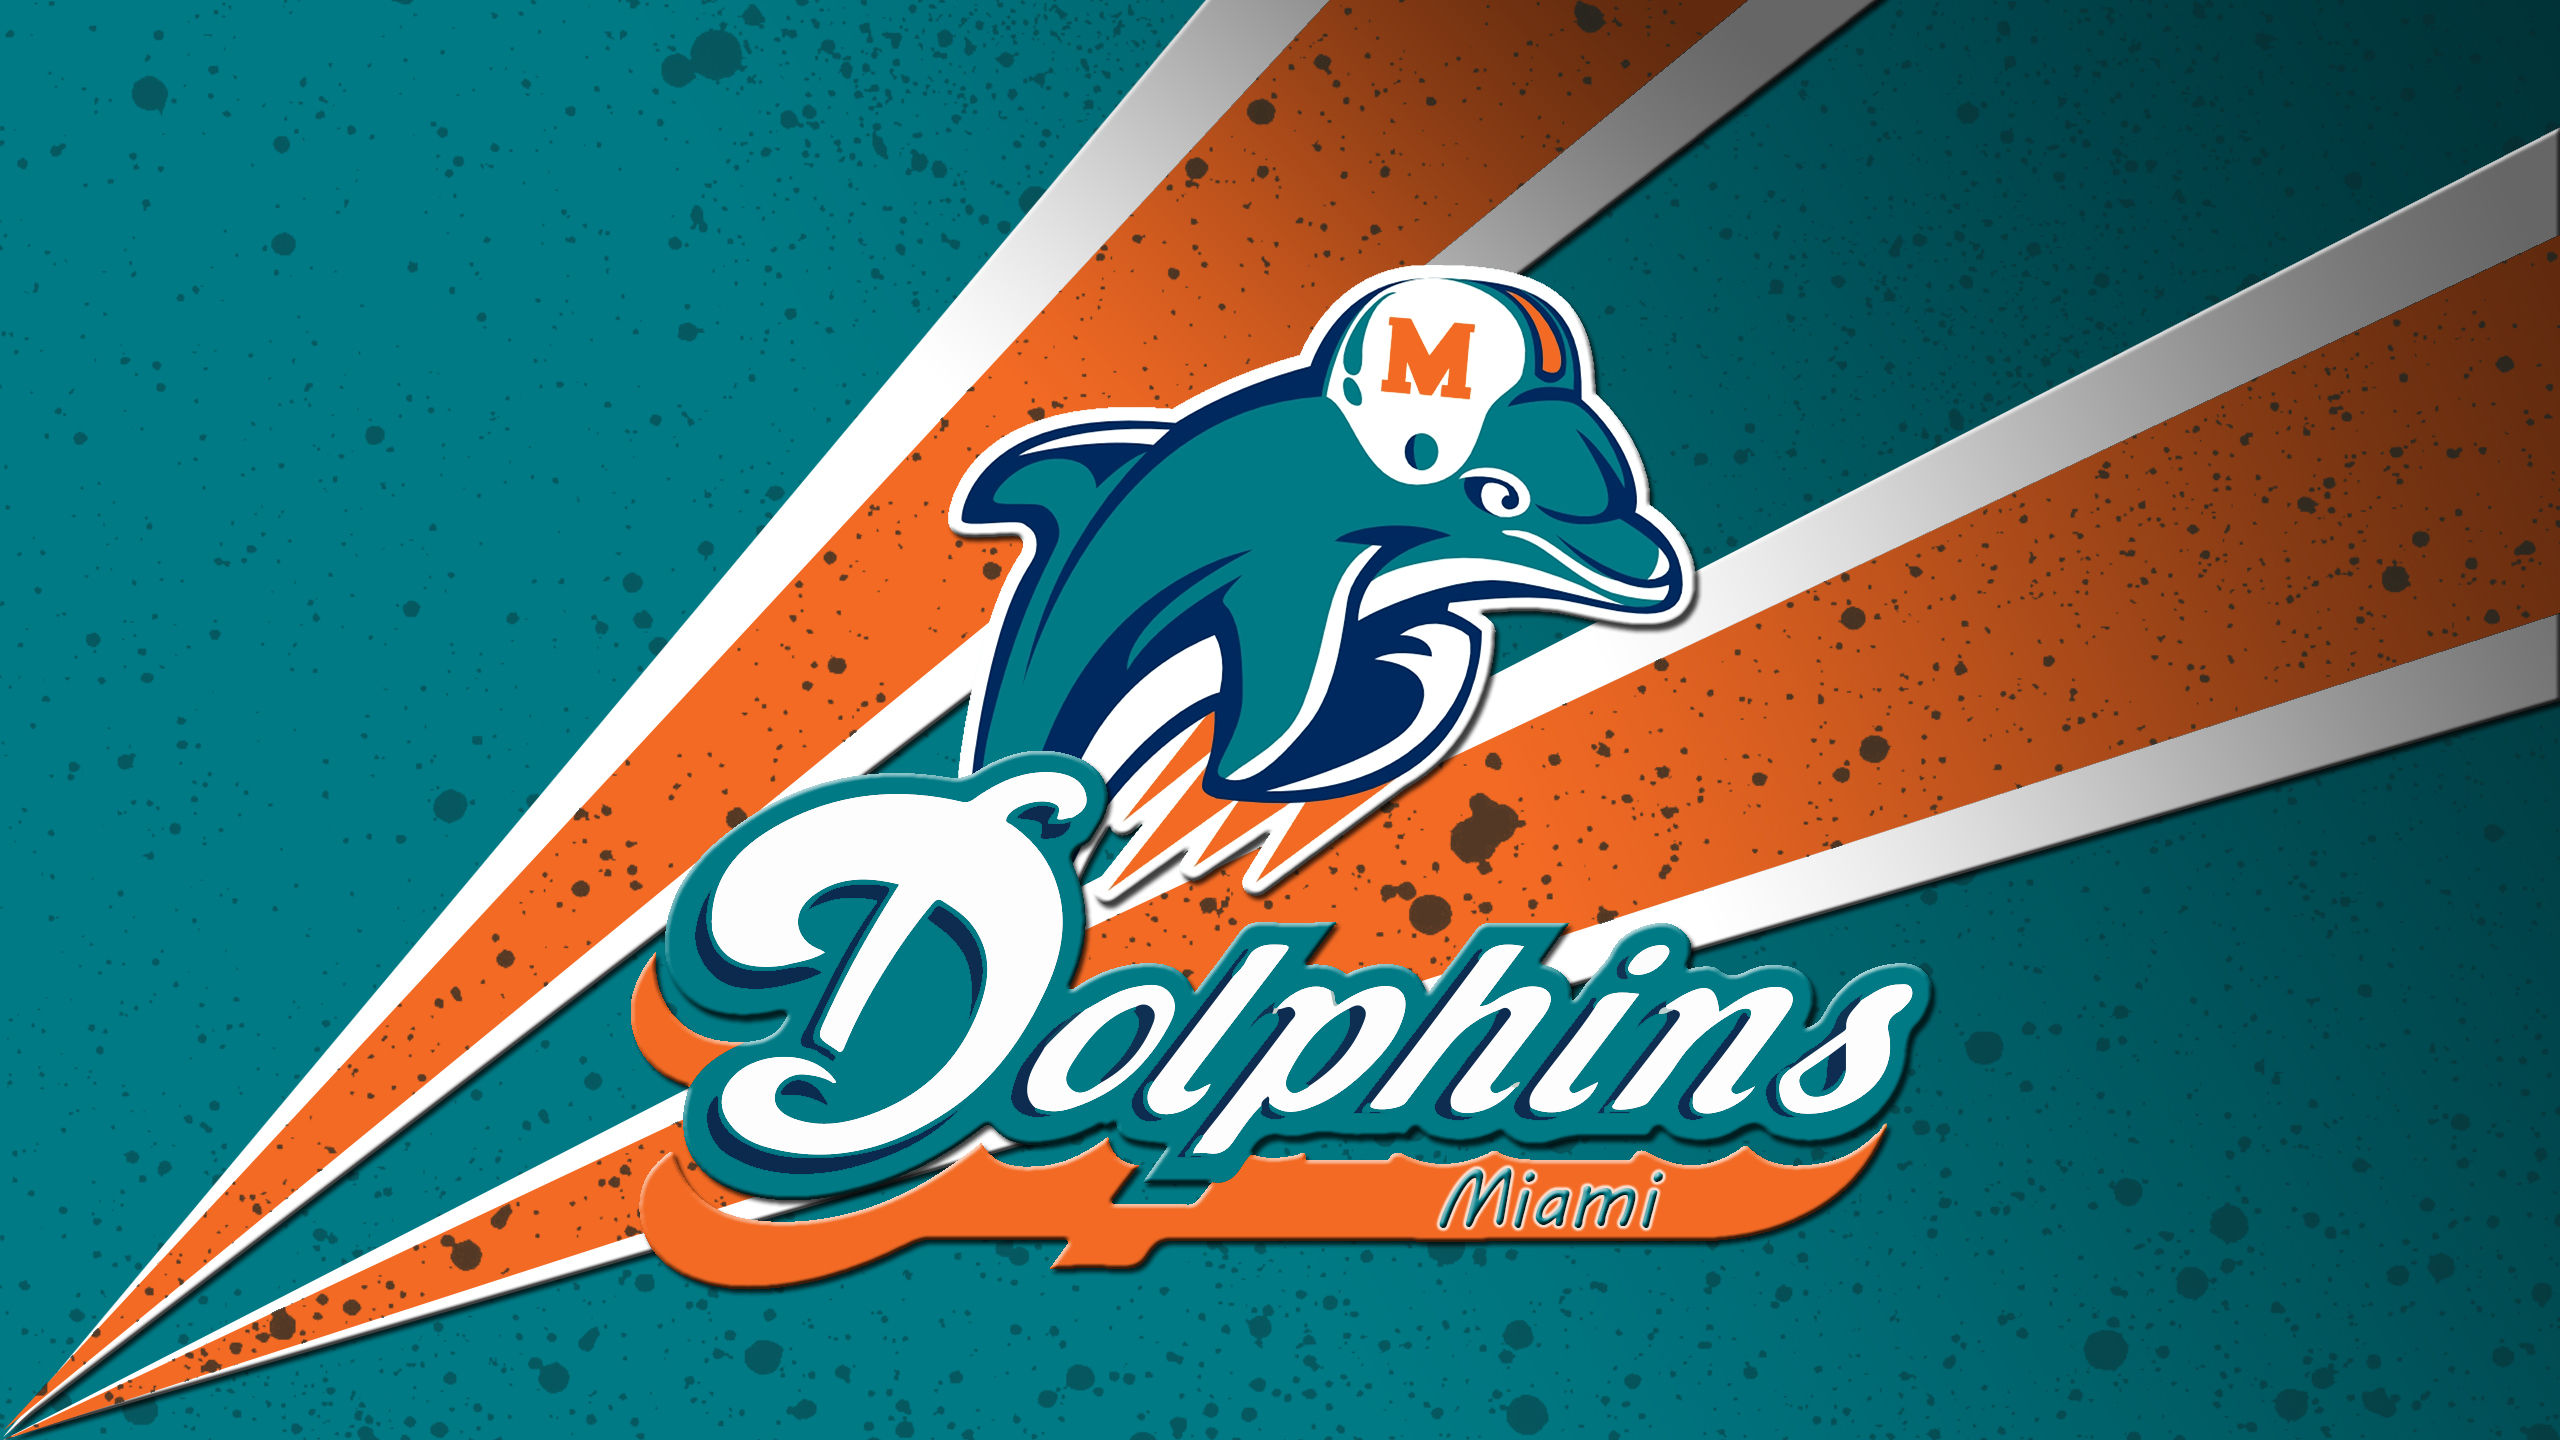 Miami Dolphins by BeAware8 on deviantART